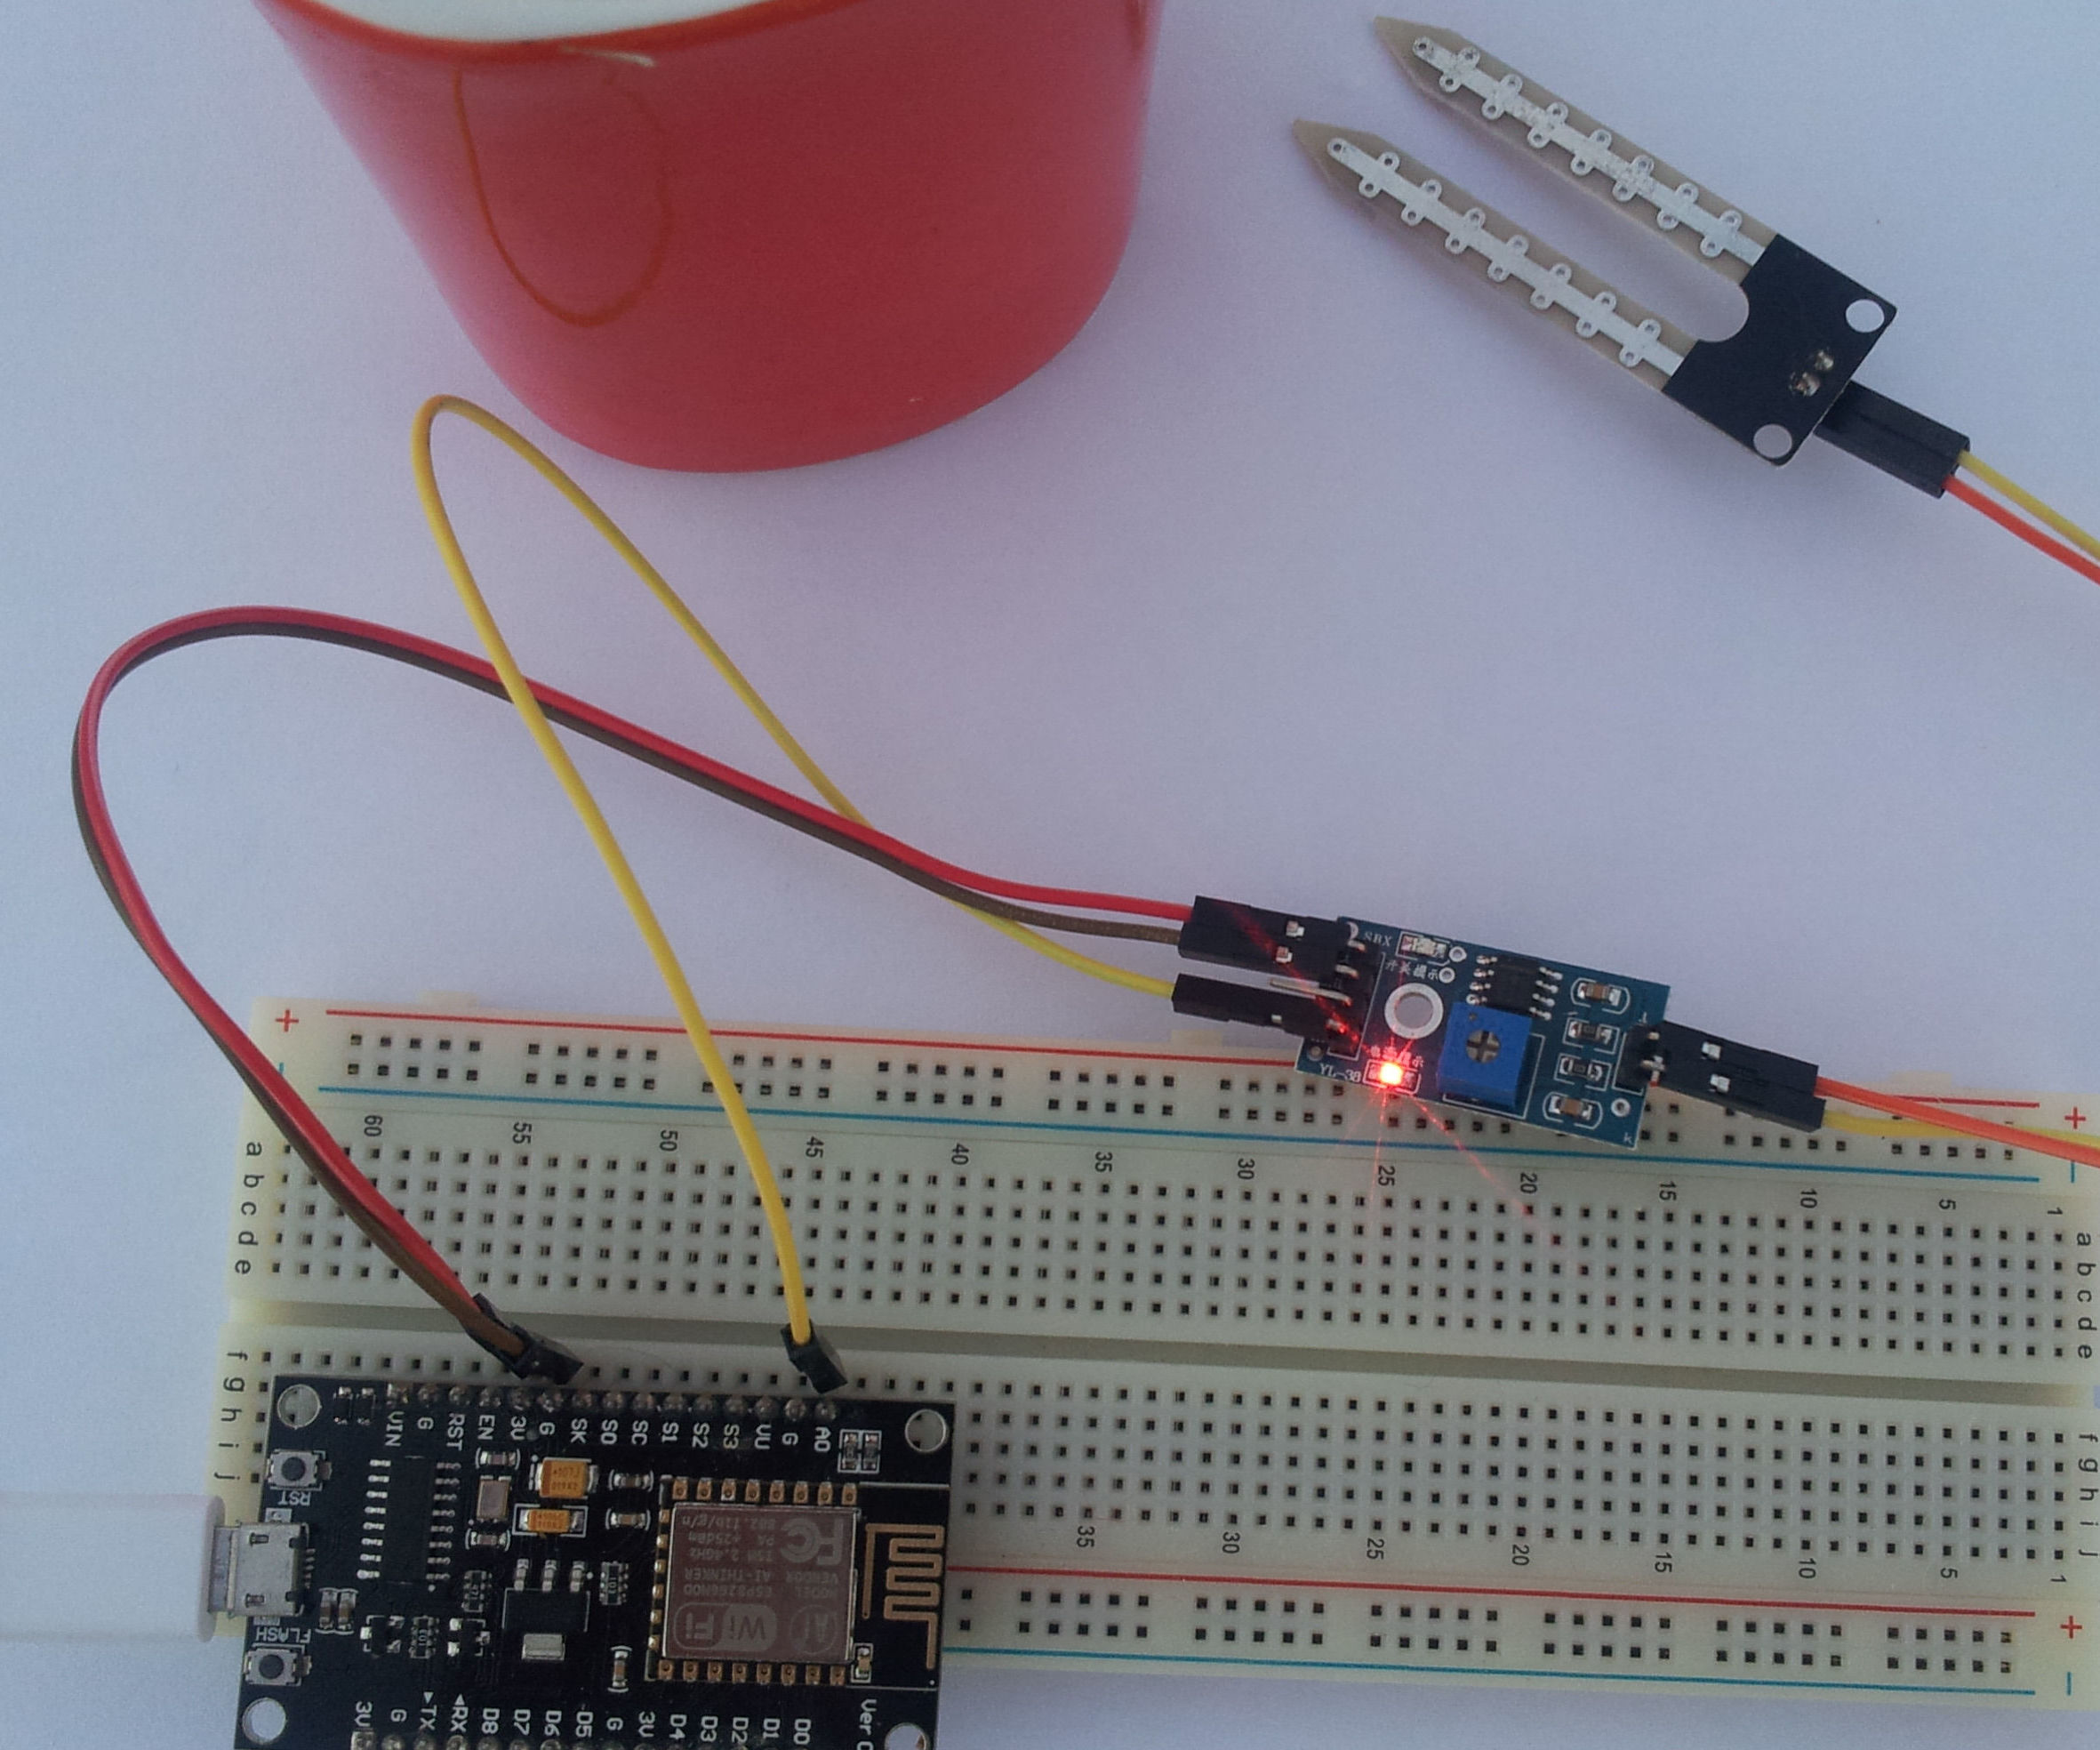 How to Connect Soil Moisture Sensor and ESP8266 to the AskSensors IoT Cloud